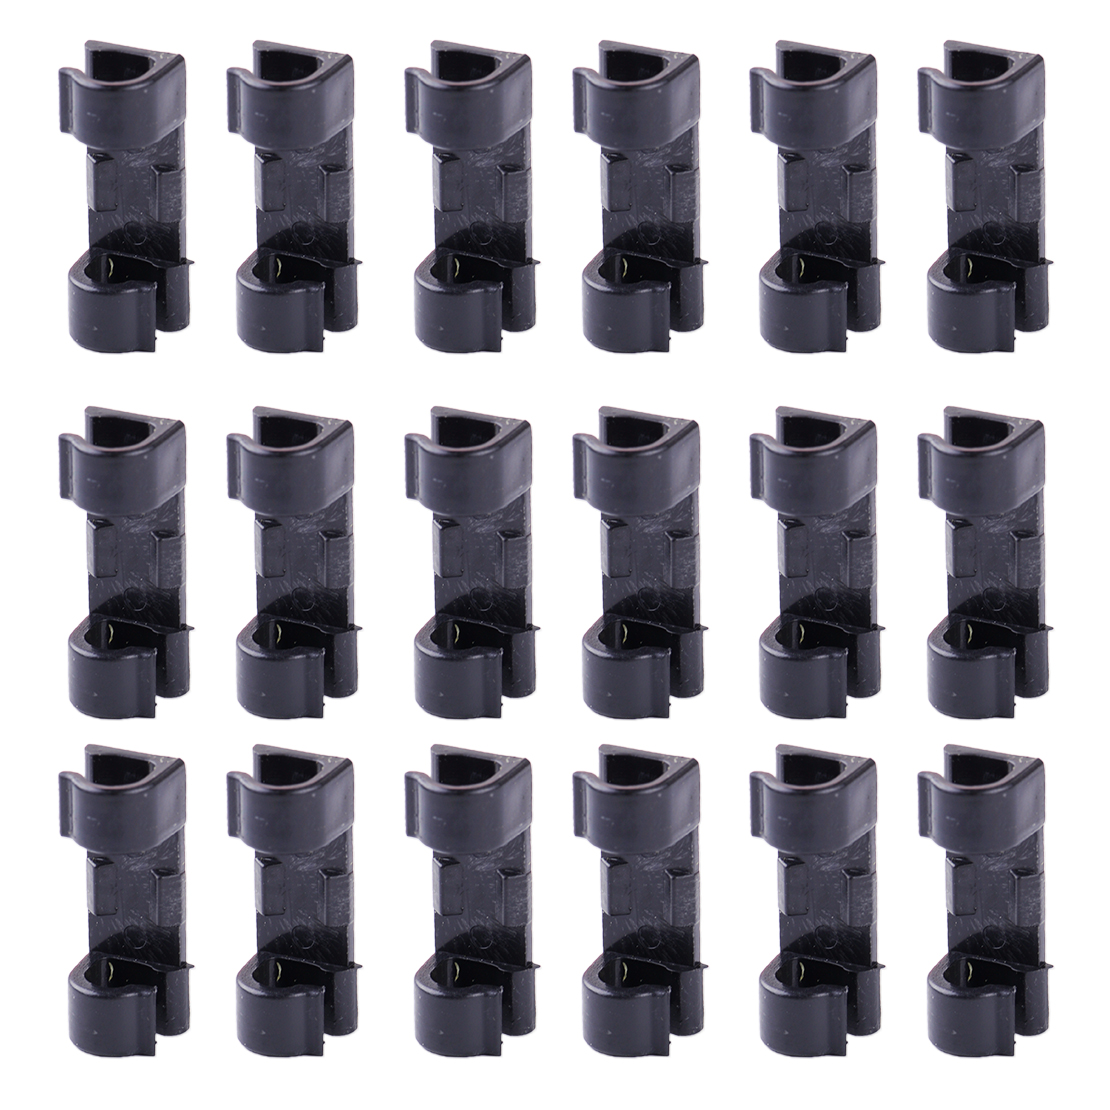 Cord Holder Wall: 20pcs Self Adhesive Wire Cable Cord Clips Clamp Table Wall